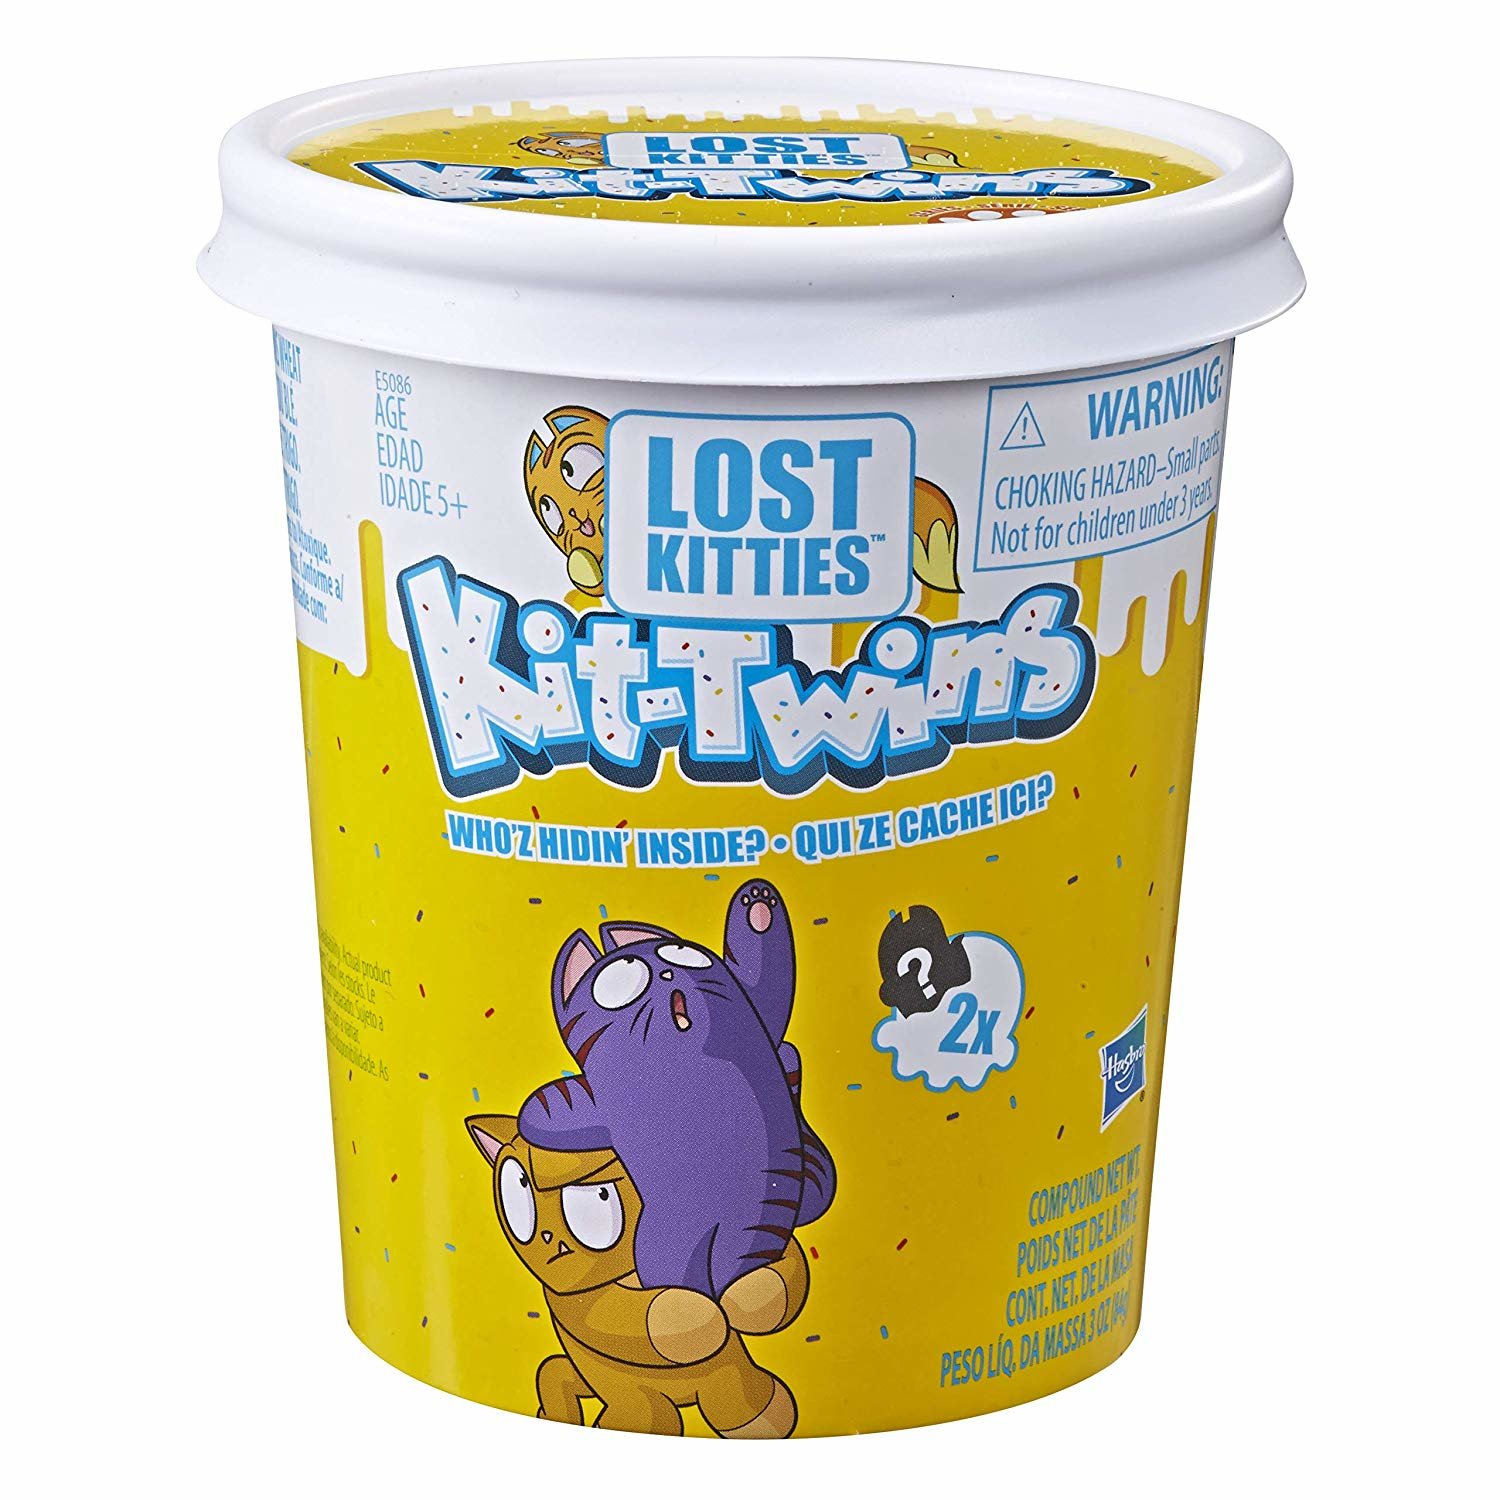 Indelis su staigmena Hasbro Lost Kitties Kit-Twins